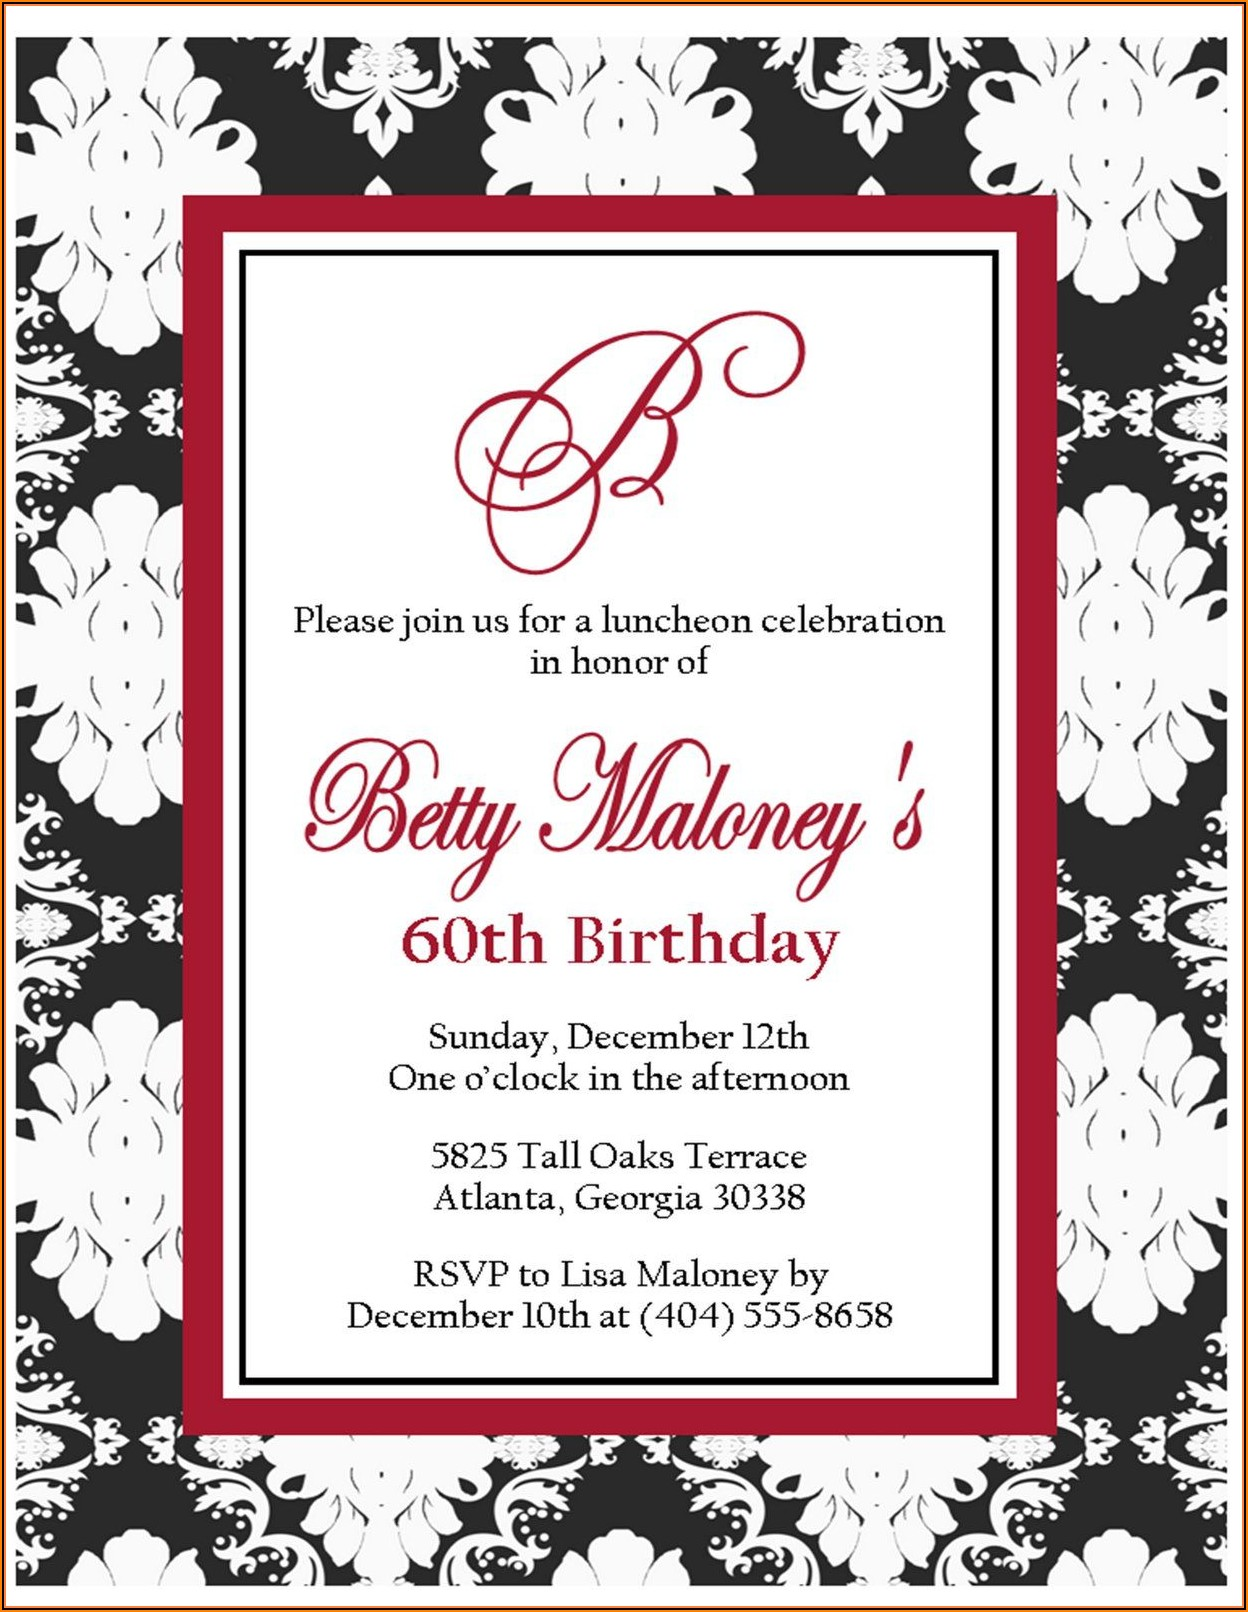 60th Birthday Invitation Templates For Her